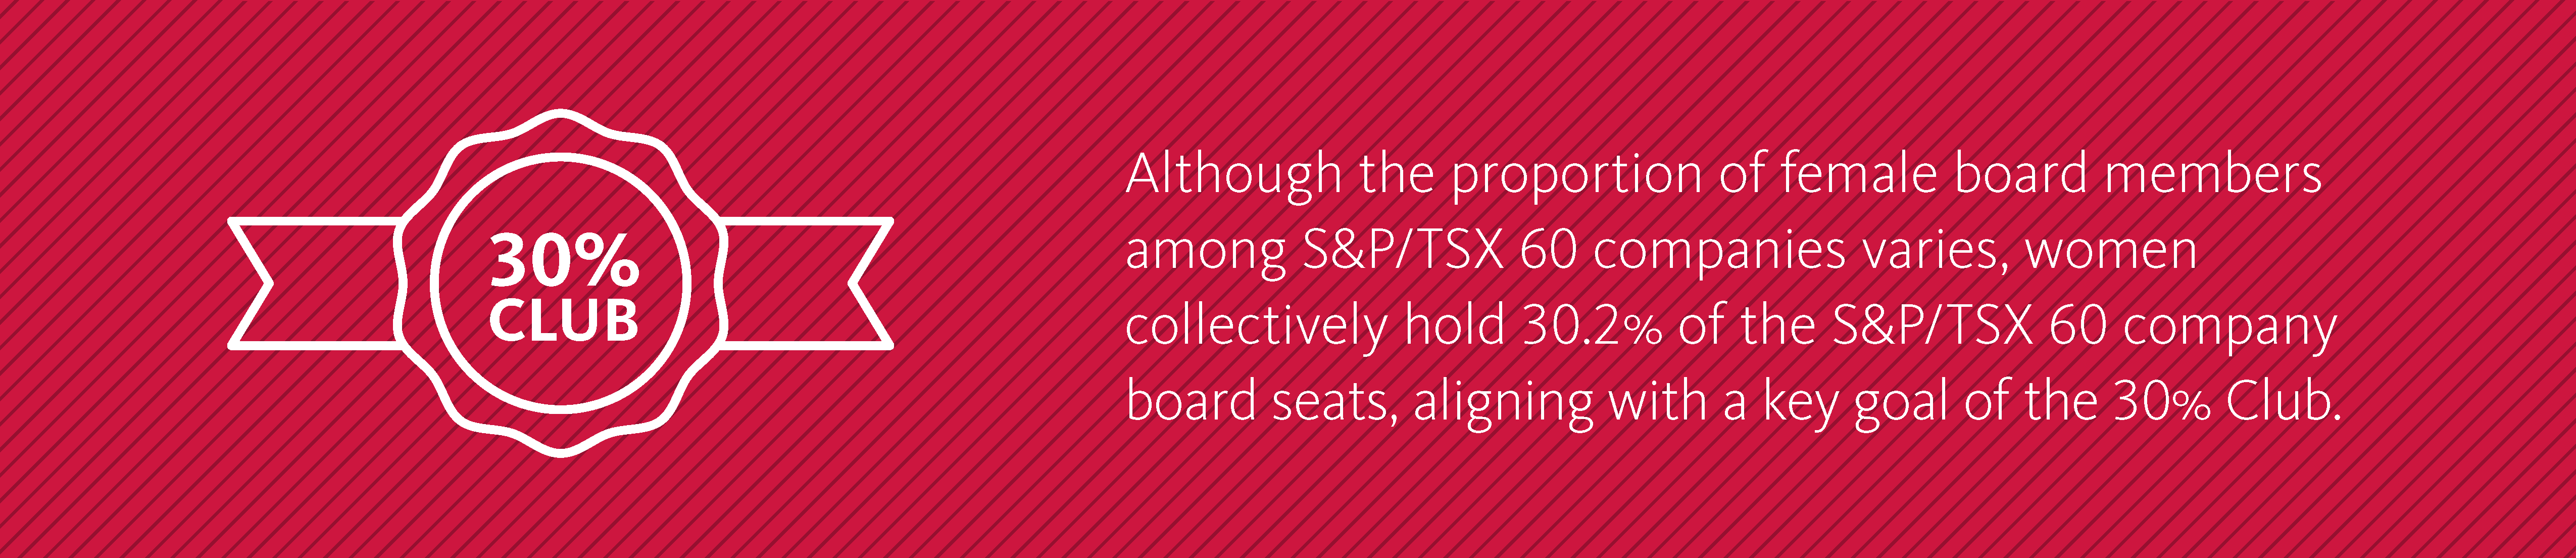 Although the proportion of female board members among S&P/TSX 60 companies varies, women collectively hold 30.2%25 of the S&P/TSX 60 company board seats, aligning with a key goal of the 30%25 Club.